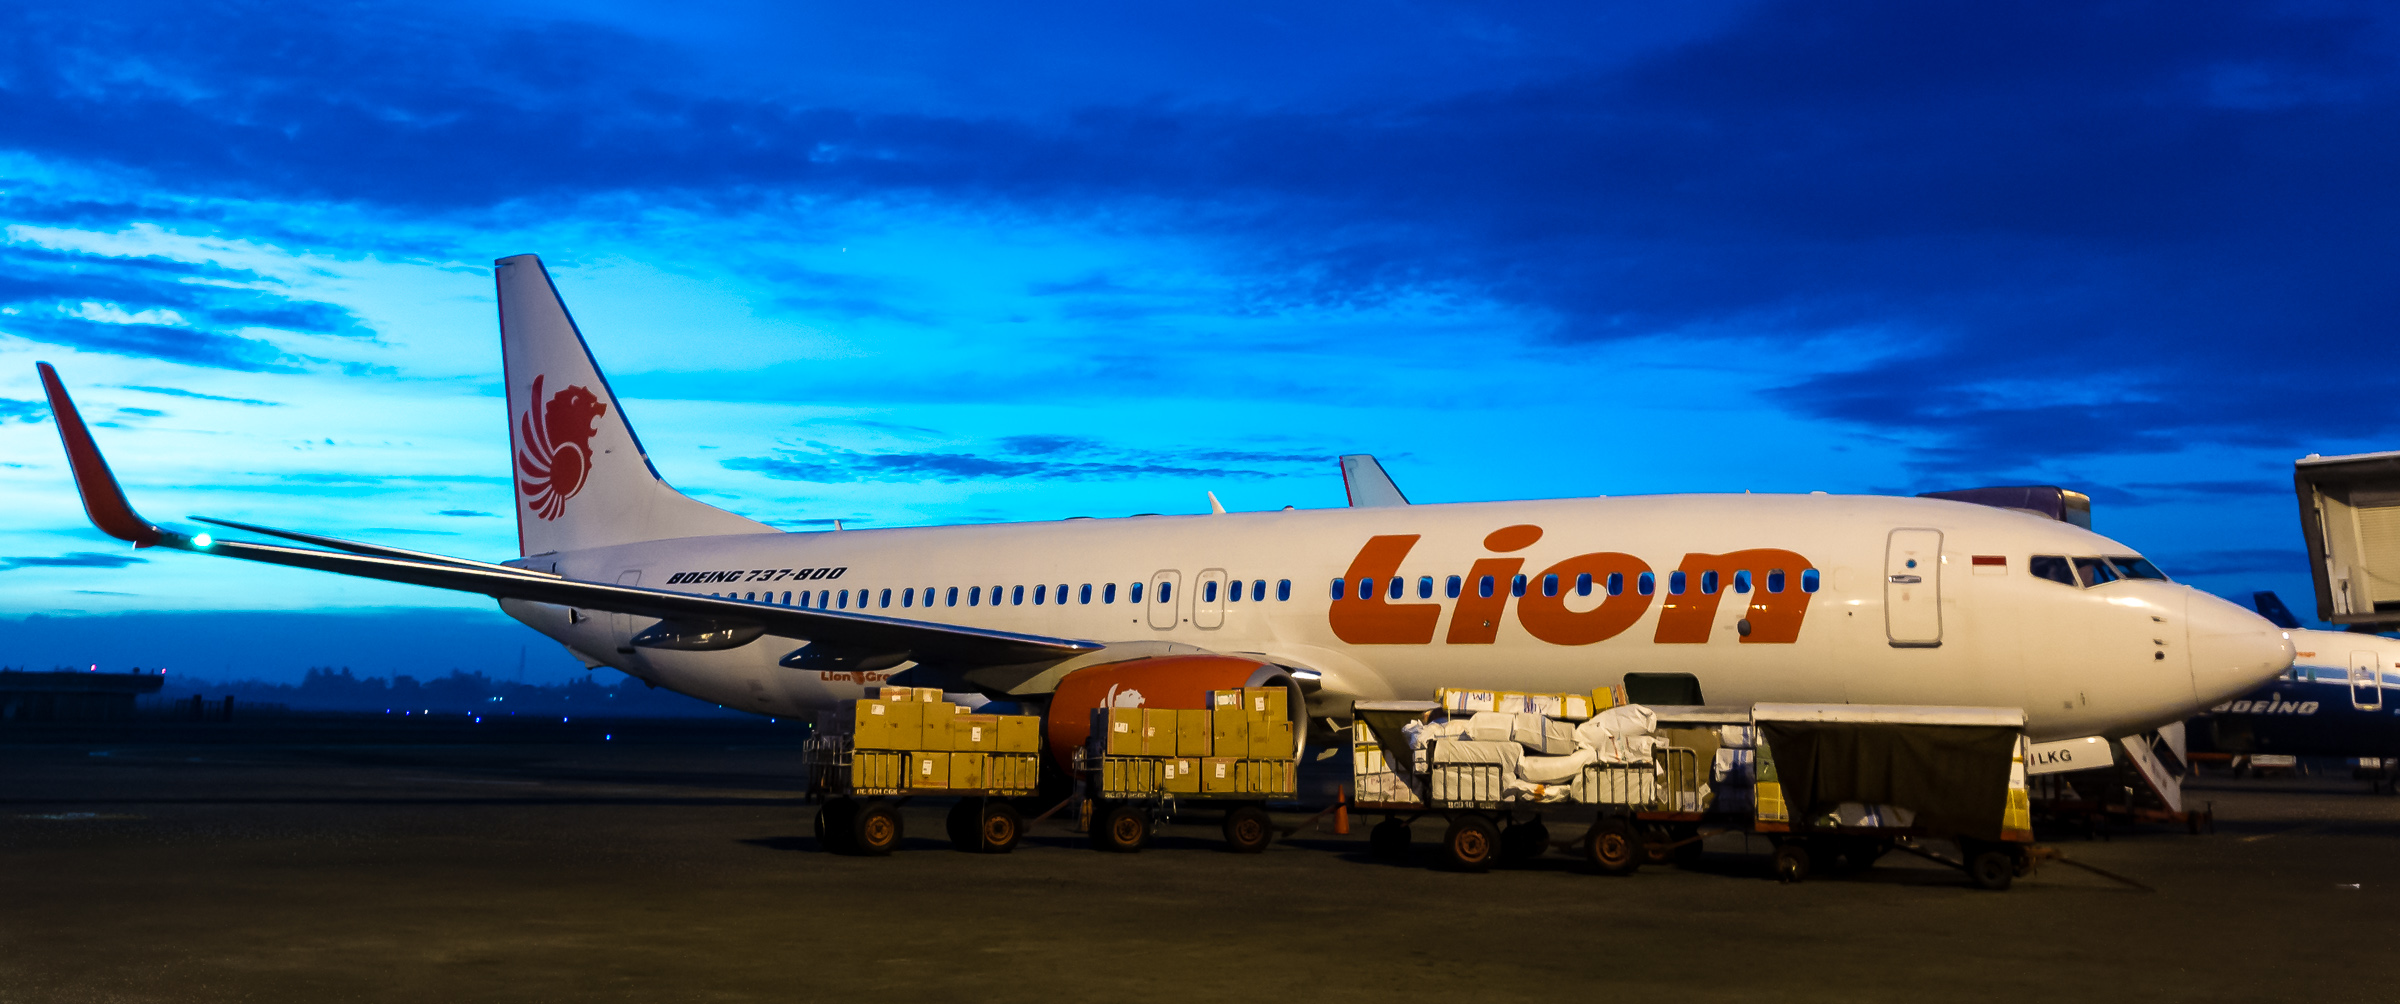 Lion Air - Iksa Menajang